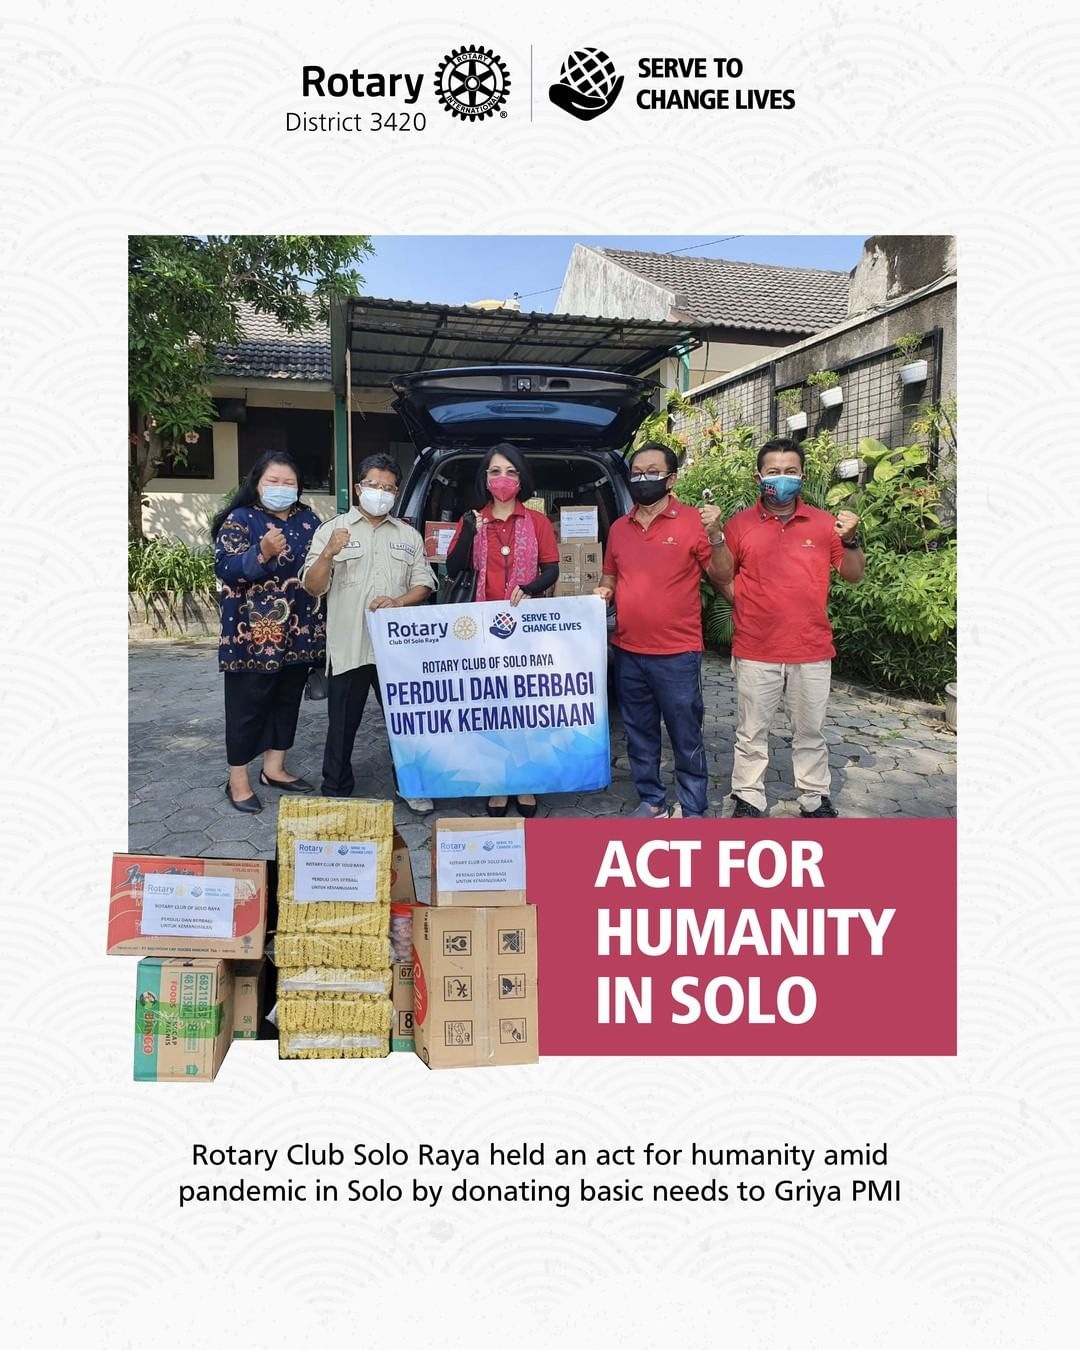 Act for Humanity in Solo